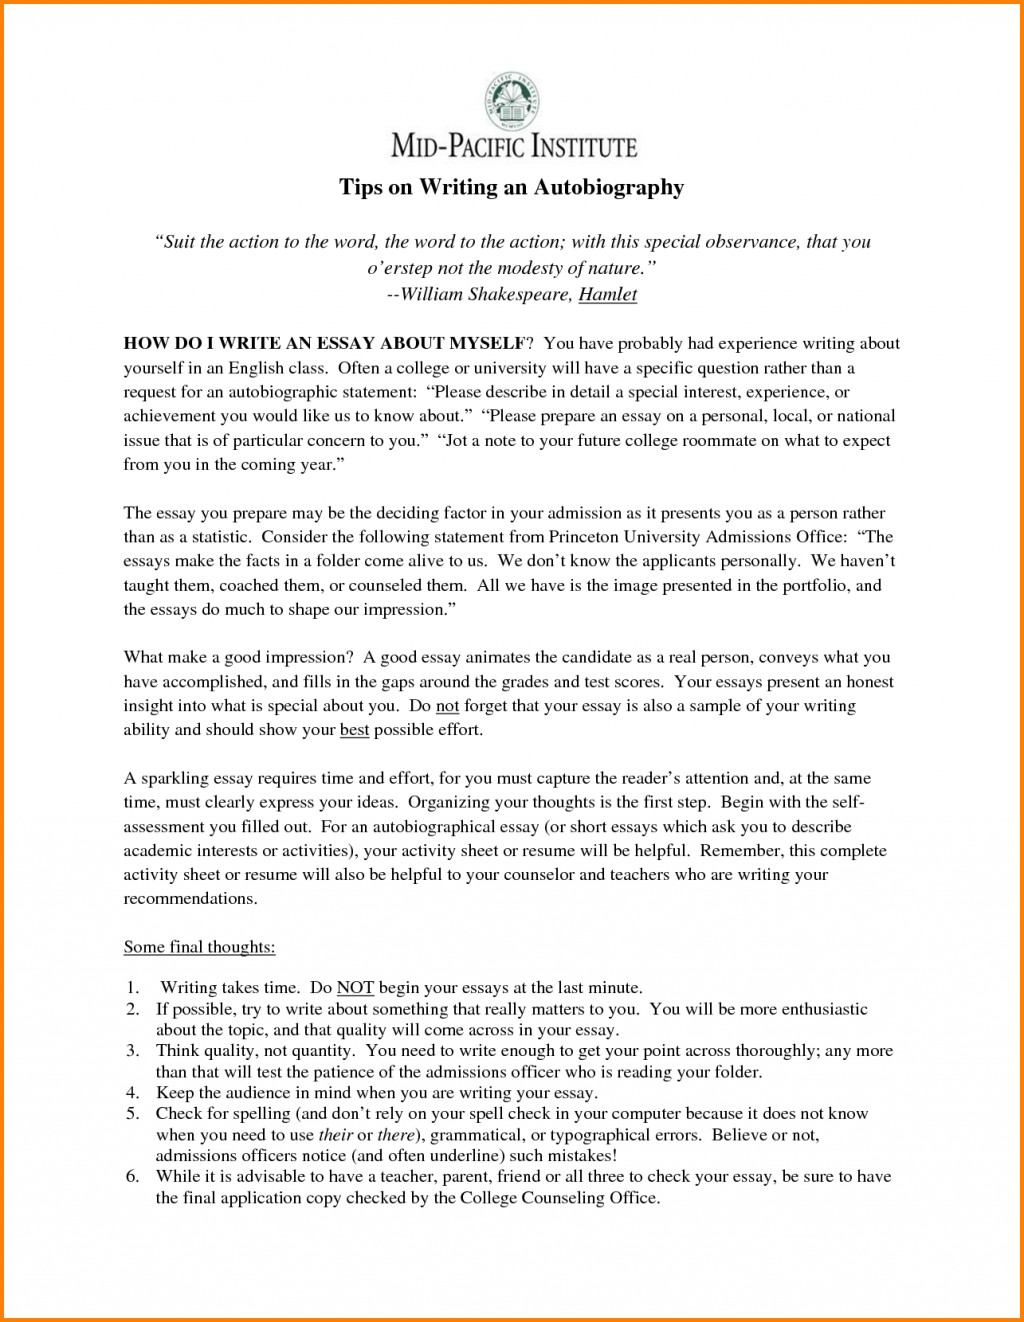 007 Essay Example How To Begin An Start College Application About Yourself Starting L Incredible Introduction A Book Large